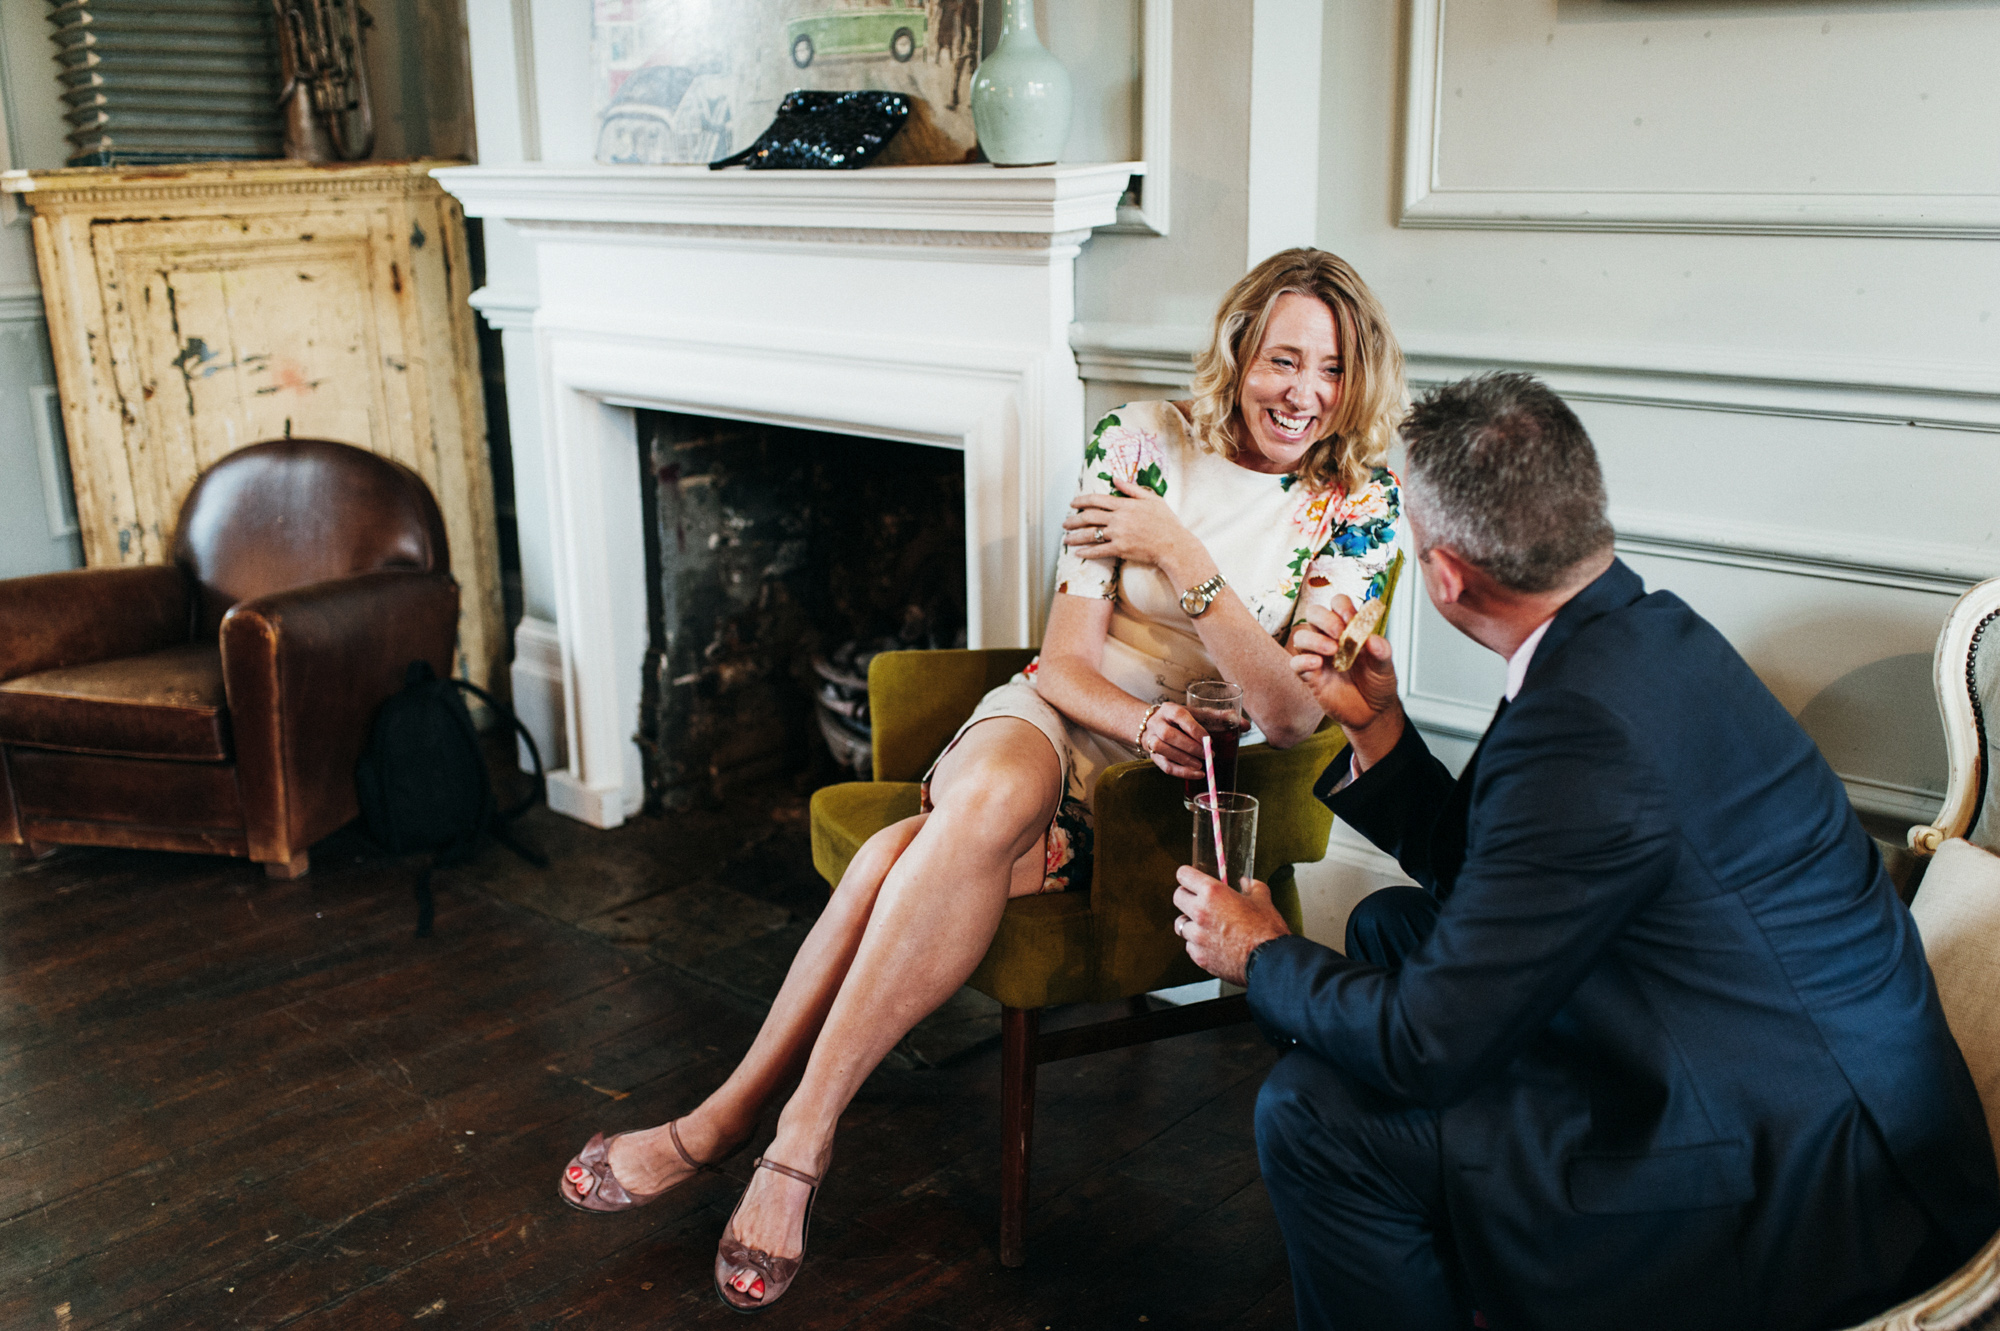 Laughing wedding guests at gay wedding The Roost Dalston wedding - quirky London wedding photographer © Babb Photo